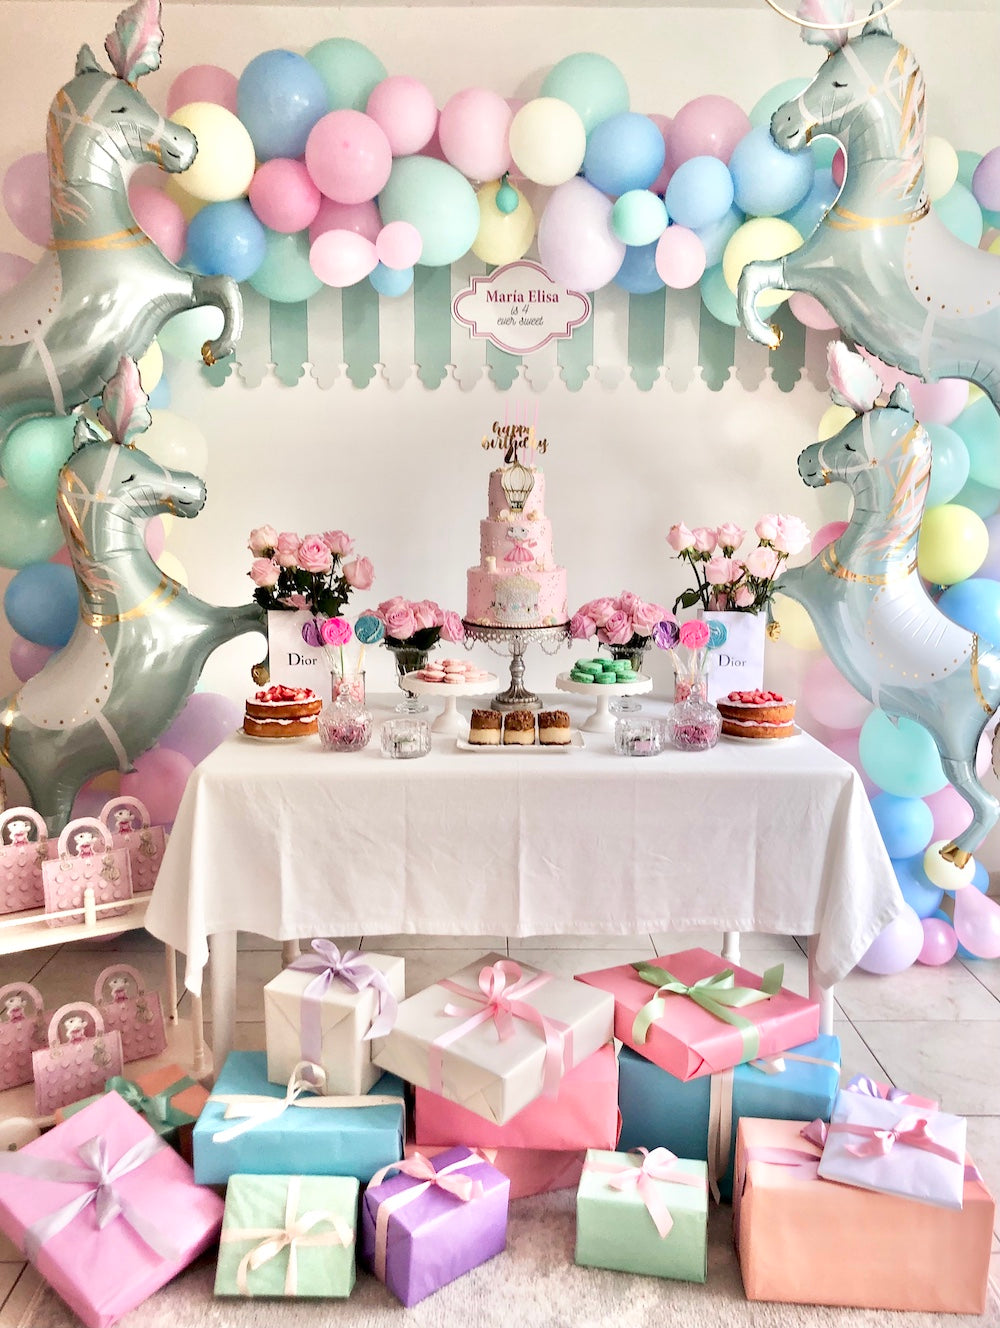 Claris the Mouse and Charlotte sy Dimby party inspiration